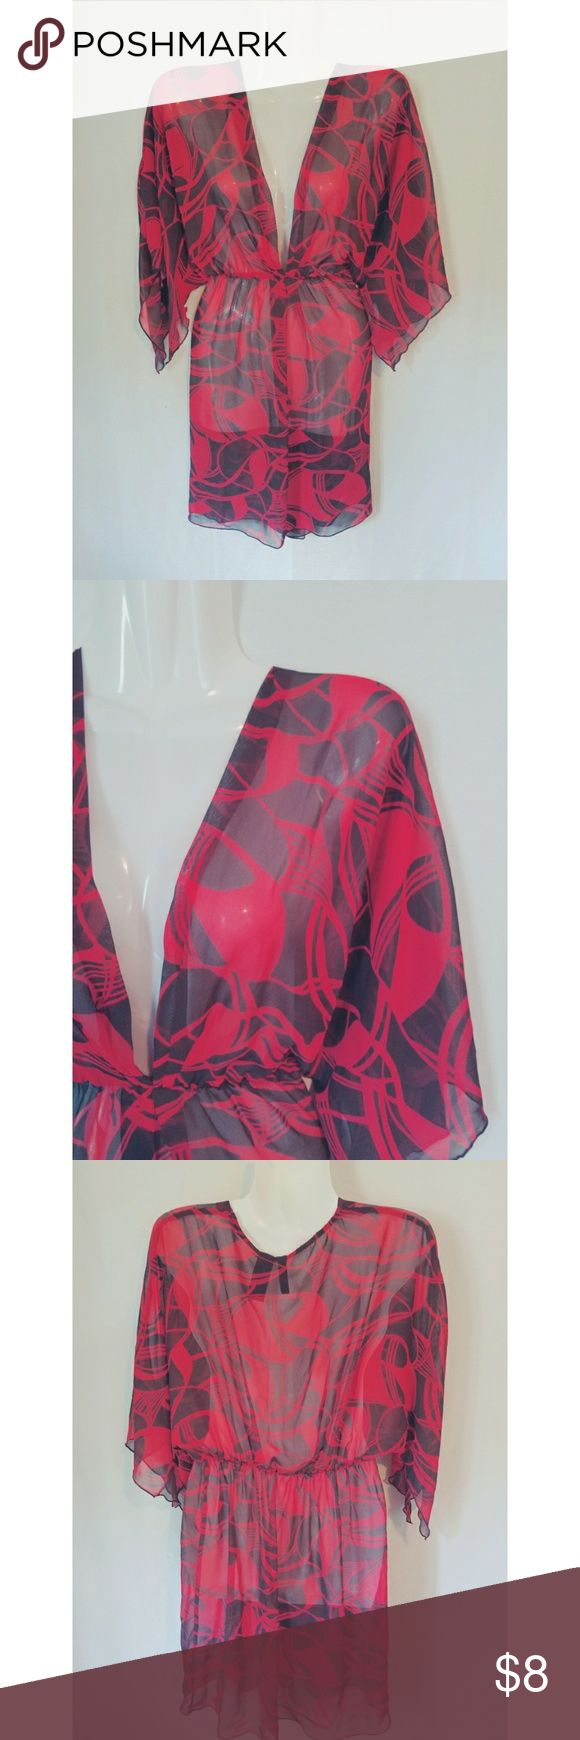 🔥5for$25 Bisou Bisou Sheer Red & Black Tunic - Bisou bisou brand - Size Medium - Sheer red and black material - Wear as a tunic or bathing suit cover up - Measurements upon request Bisou Bisou Swim Coverups